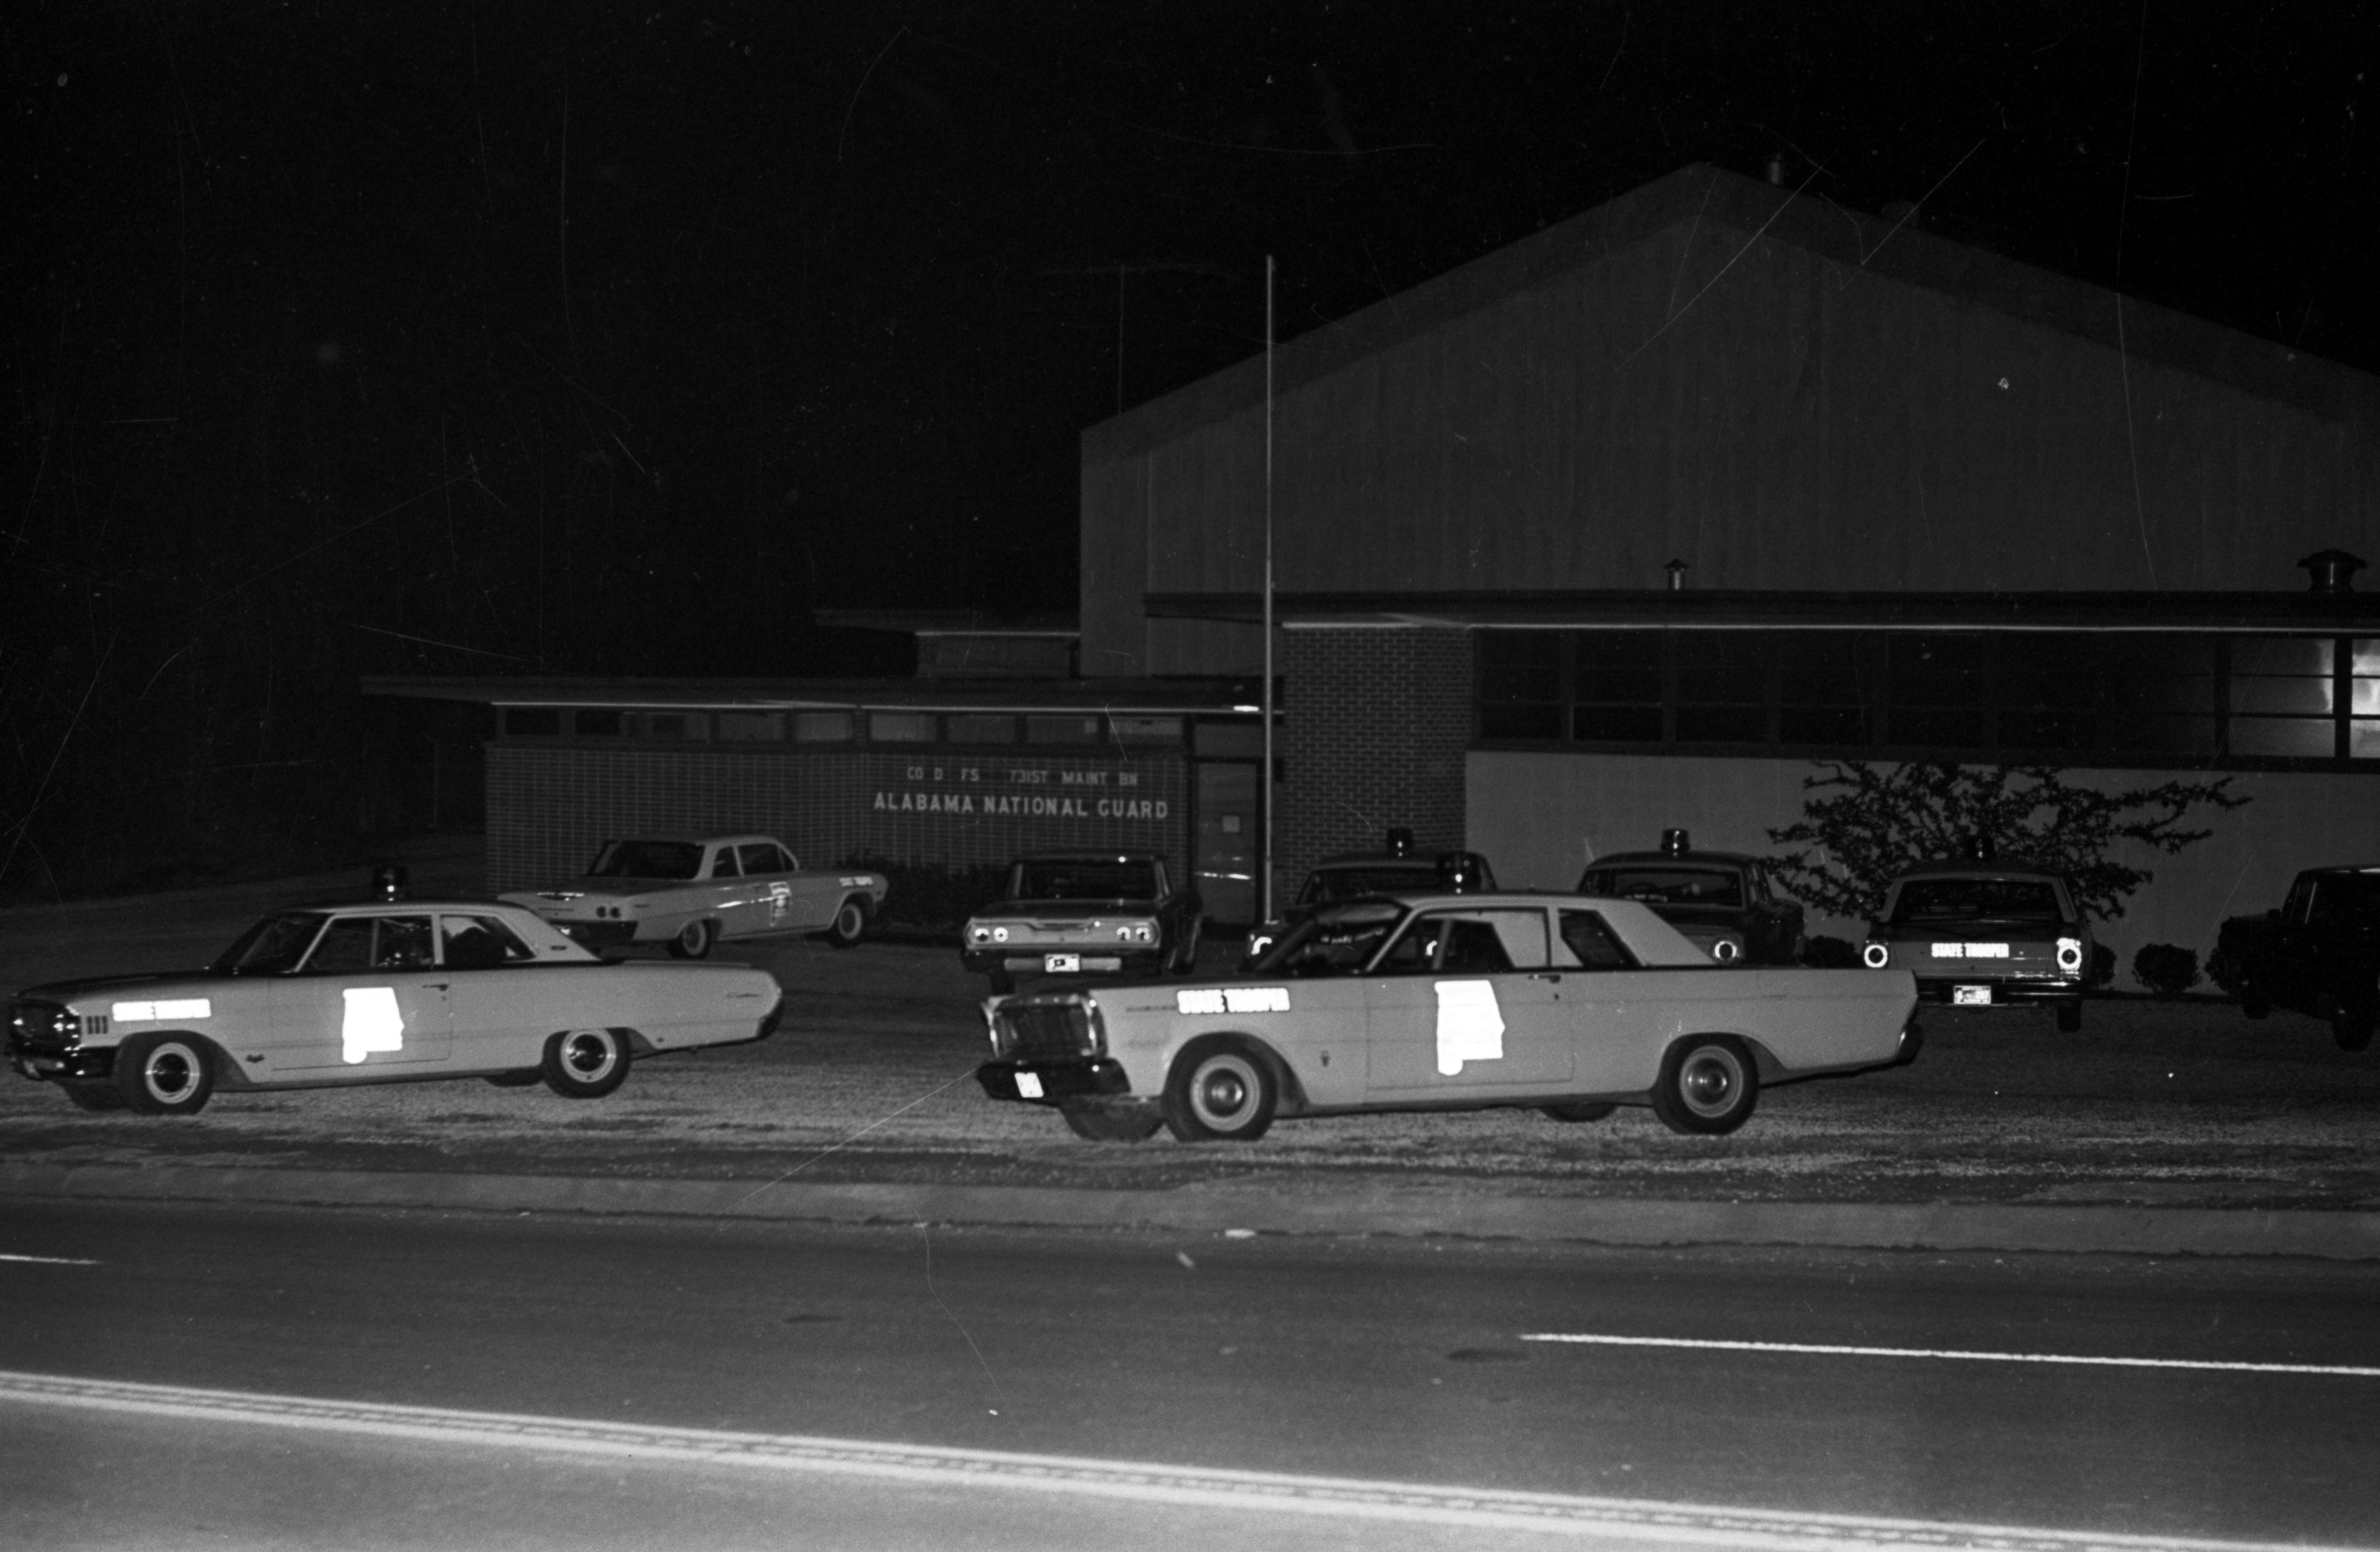 State troopers parked in front of the National Guard armory in Marion, Alabama, the night of the civil rights demonstration during which Jimmie Lee Jackson was shot.